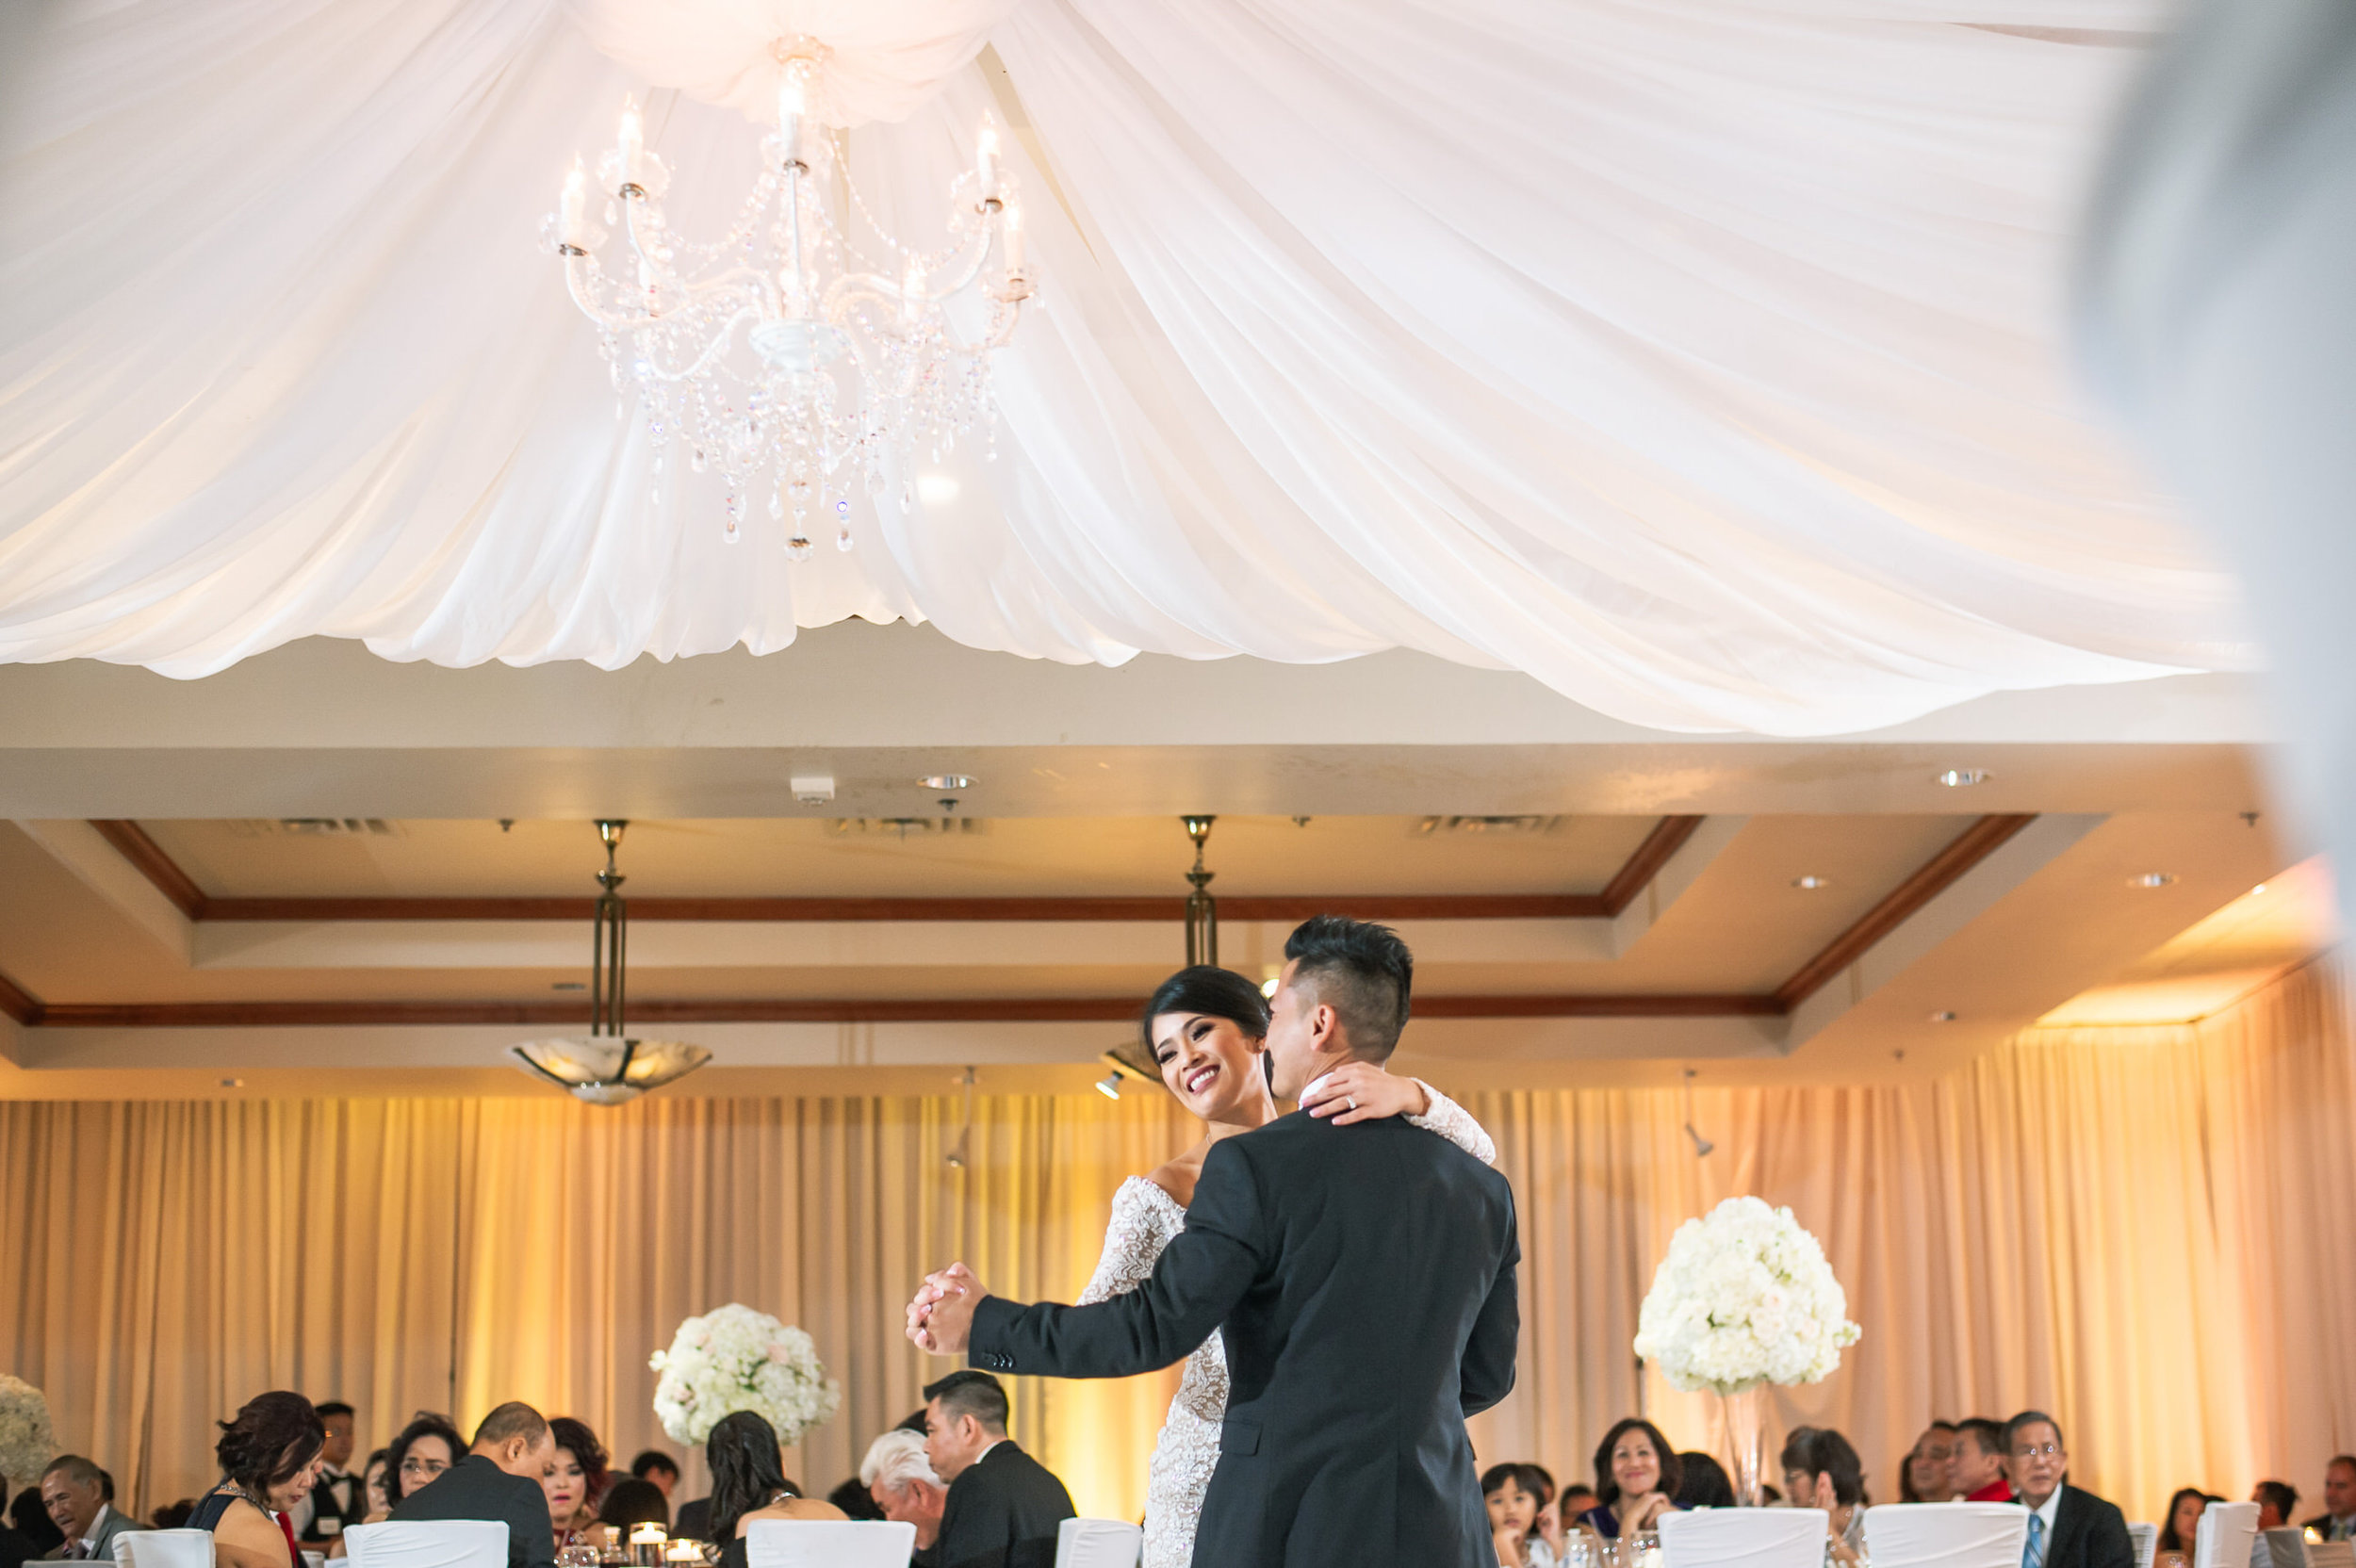 Dream_Wedding_Thanh_Thanh-20983.jpg